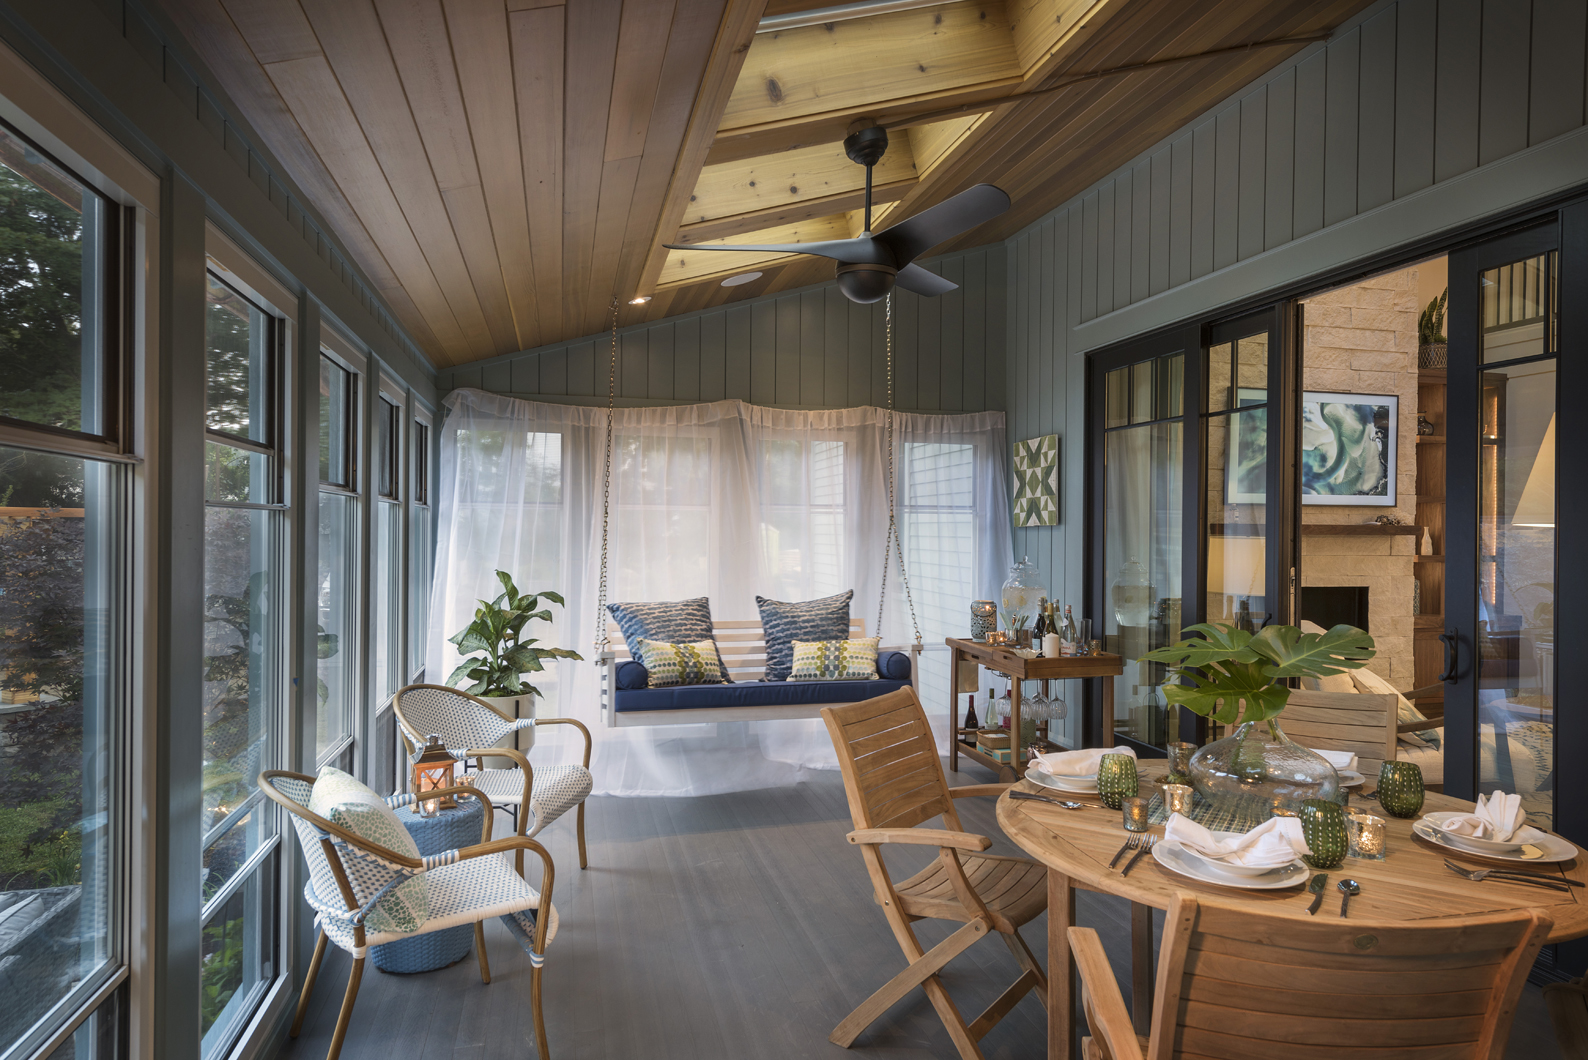 ... Hayneedle To Discuss The Design Approach For The This Old House 2018  Idea Houseu2026. This Time Sharing Tips For Creating A Stylish And Functional  Sunroom.